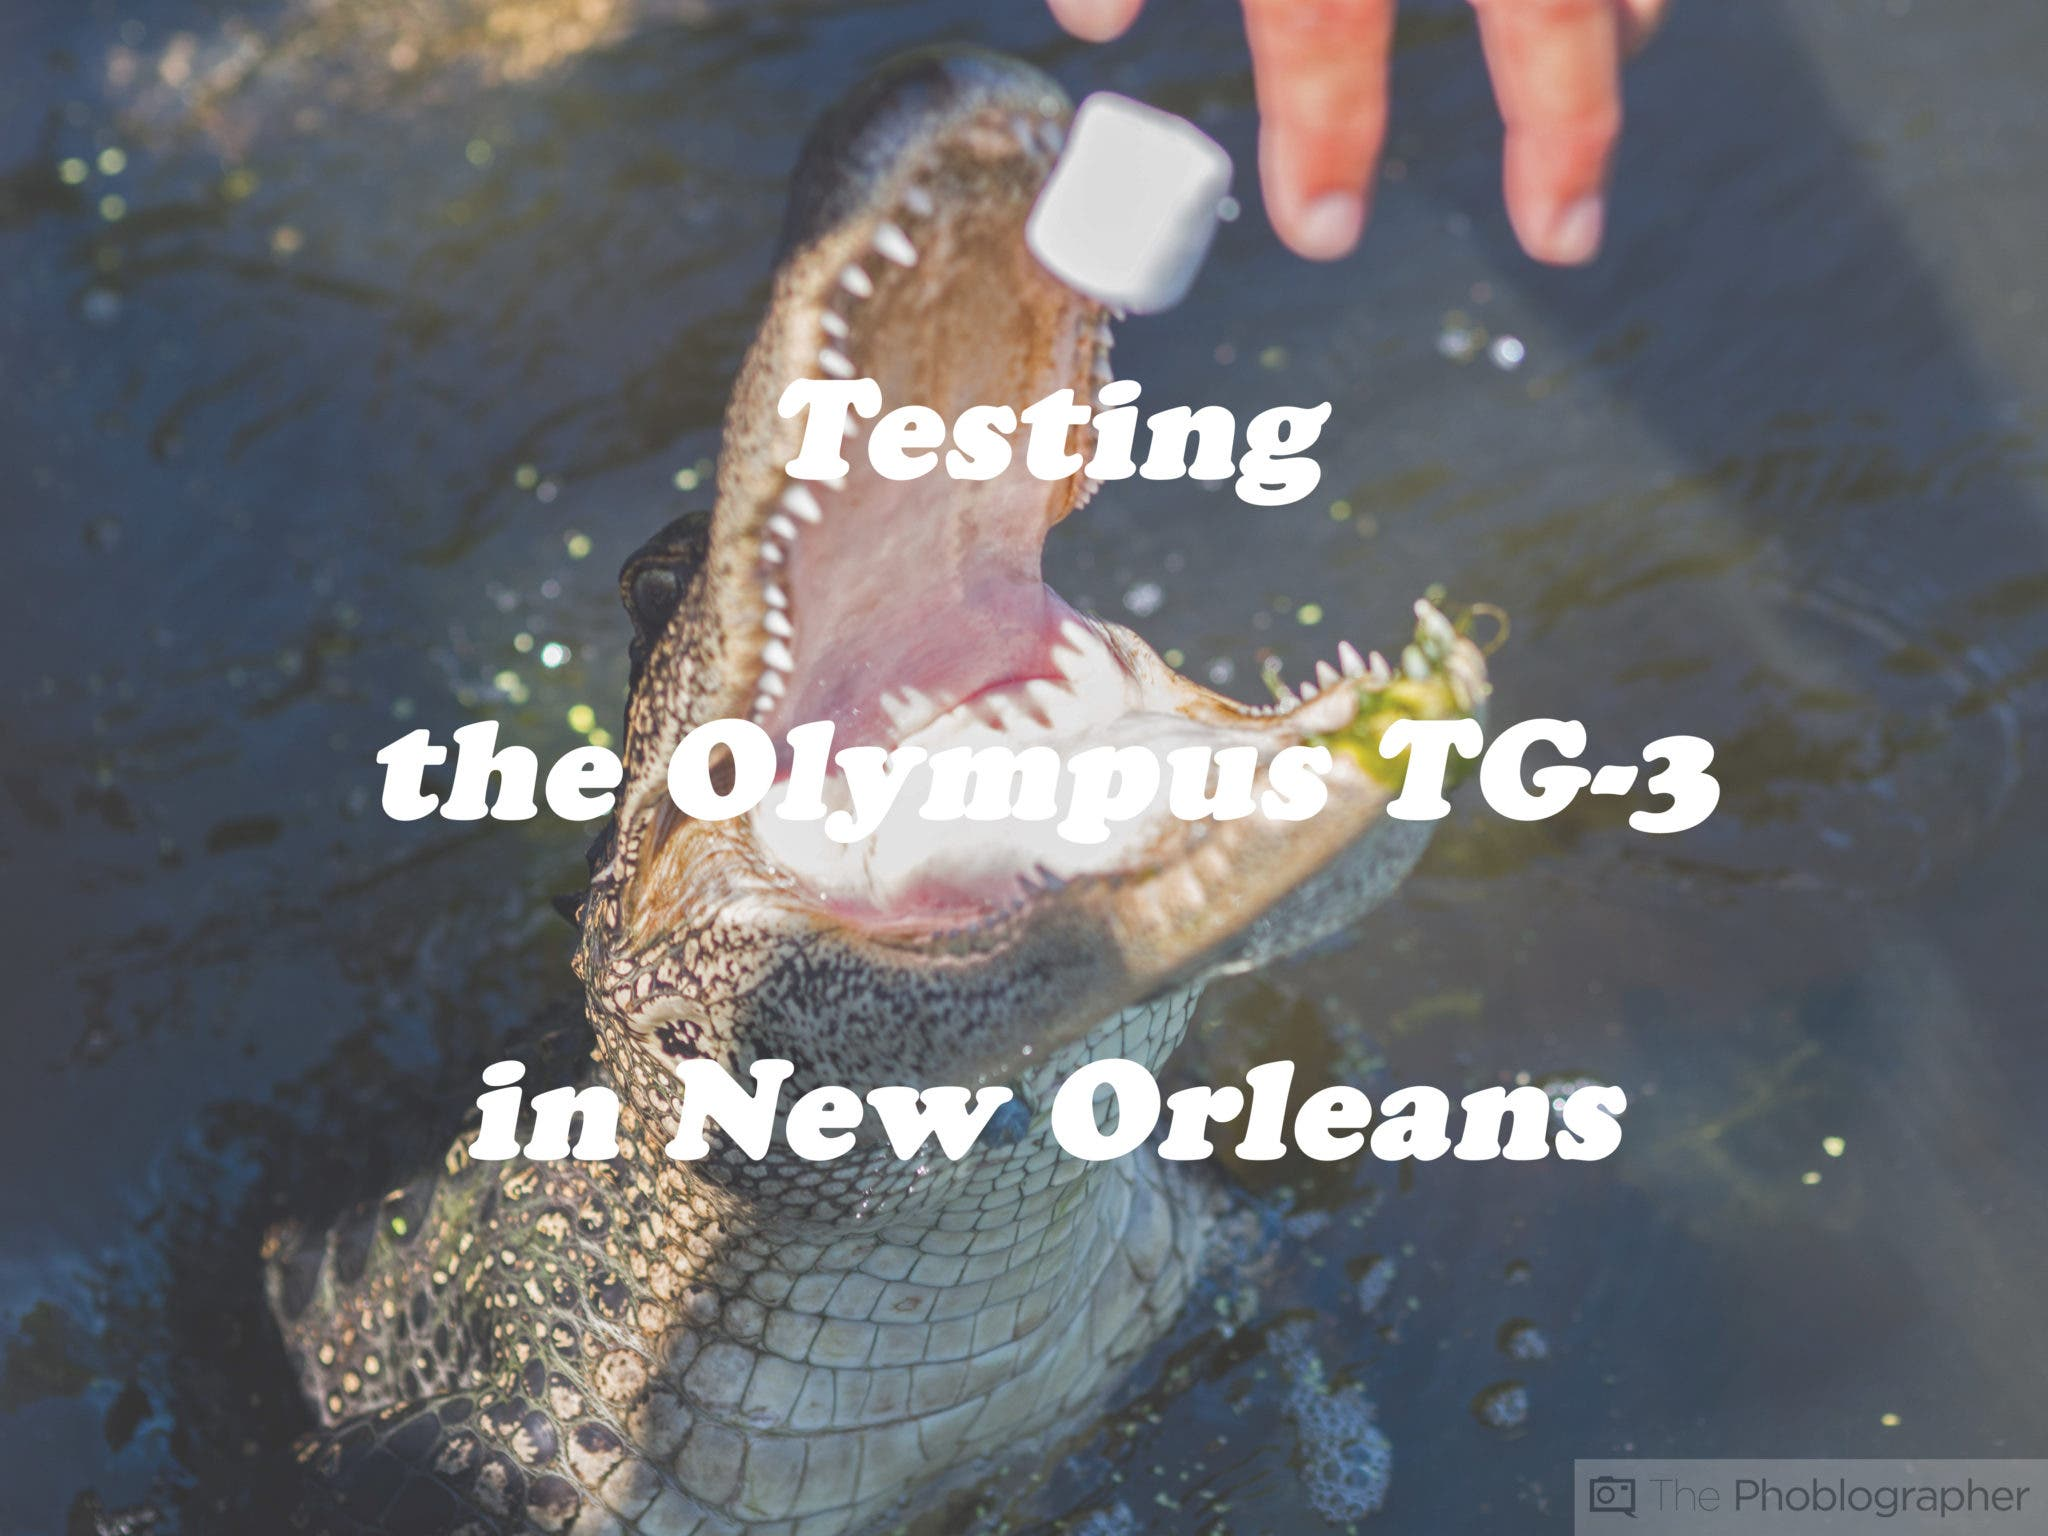 Testing the Olympus TG-3 and EM10 in New Orleans